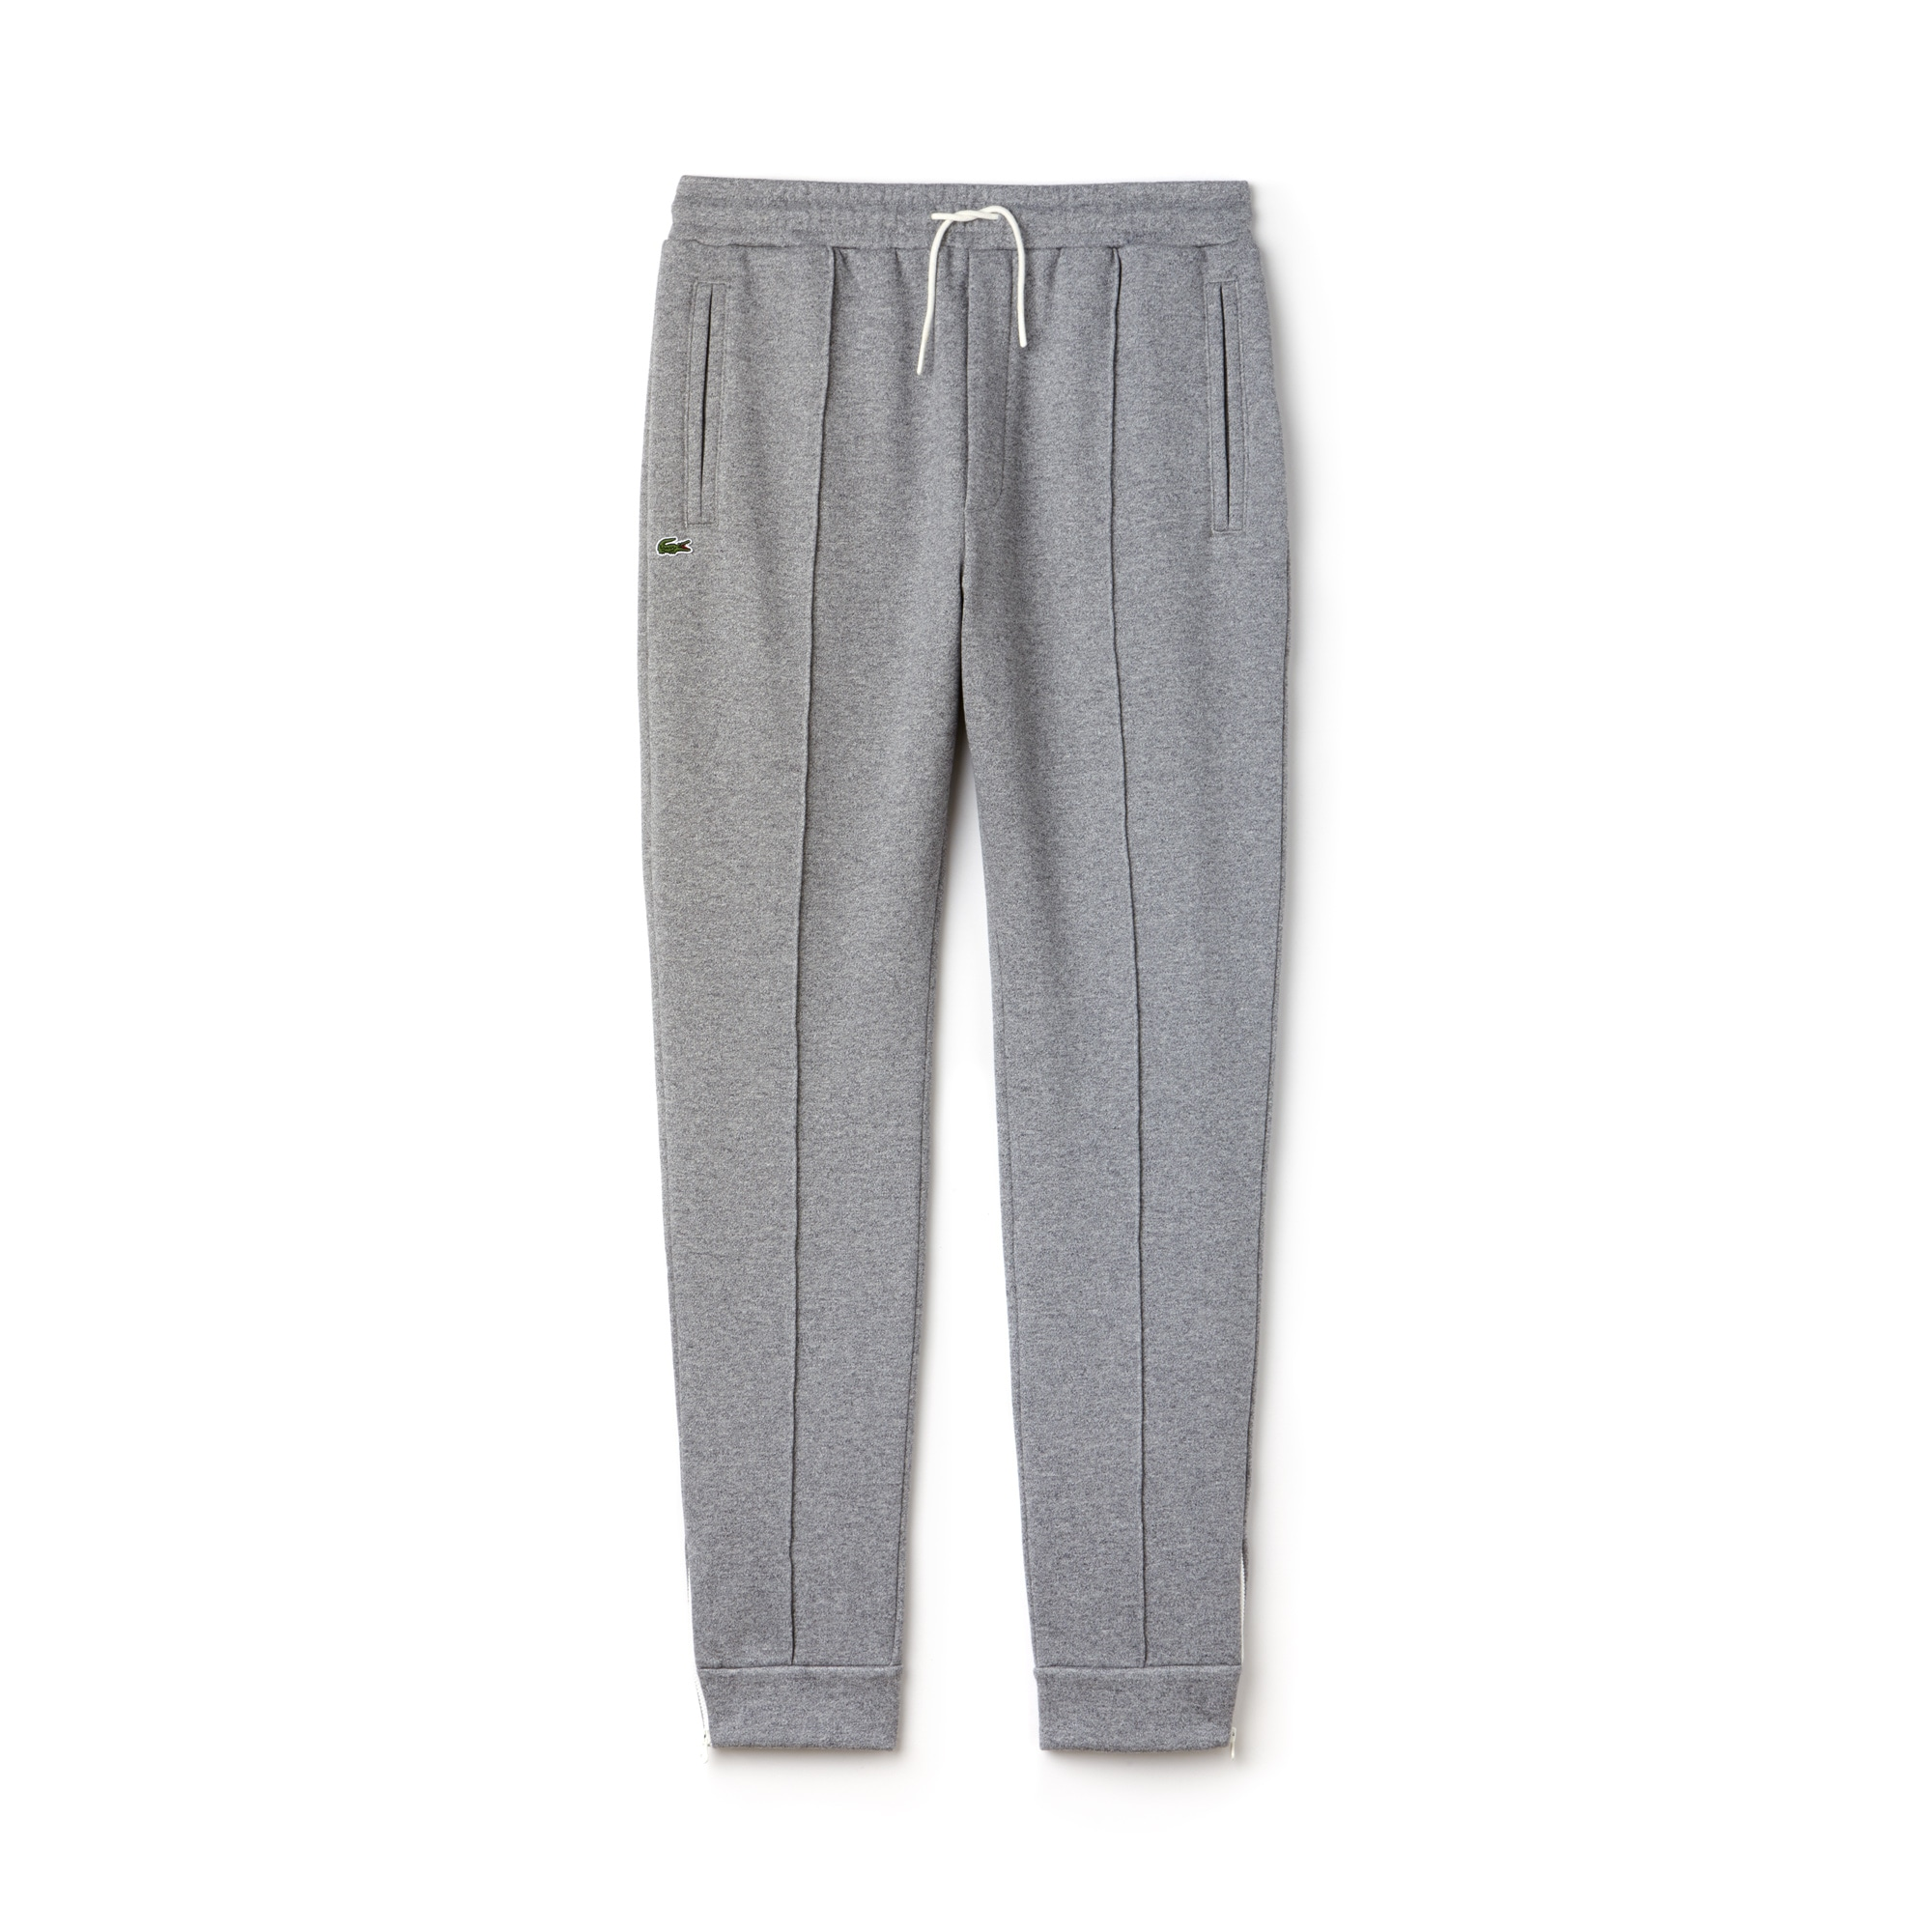 Men's LIVE Pleated Brushed Fleece Chino Pants